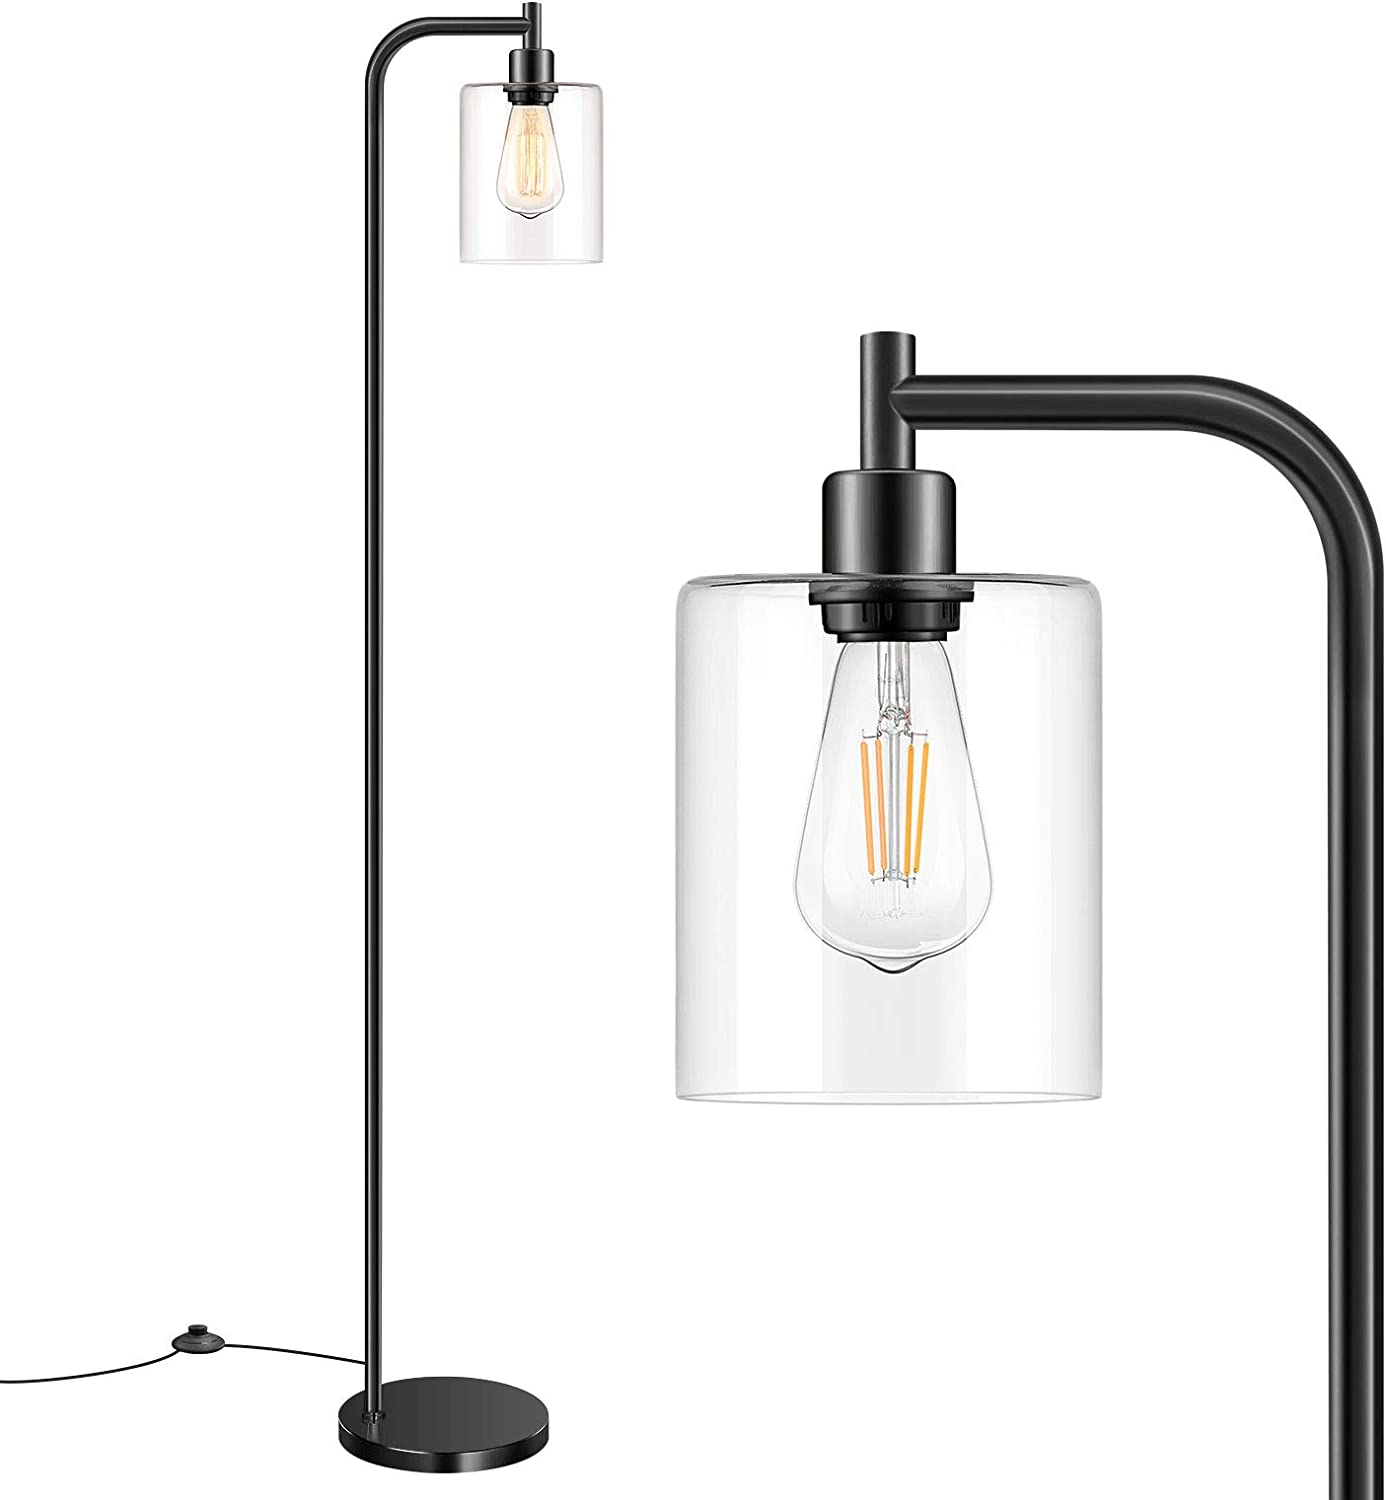 Industrial Floor Lamp with Hanging New Challenge the lowest price of Japan ☆ products world's highest quality popular Black Glass Farmhouse I Shade